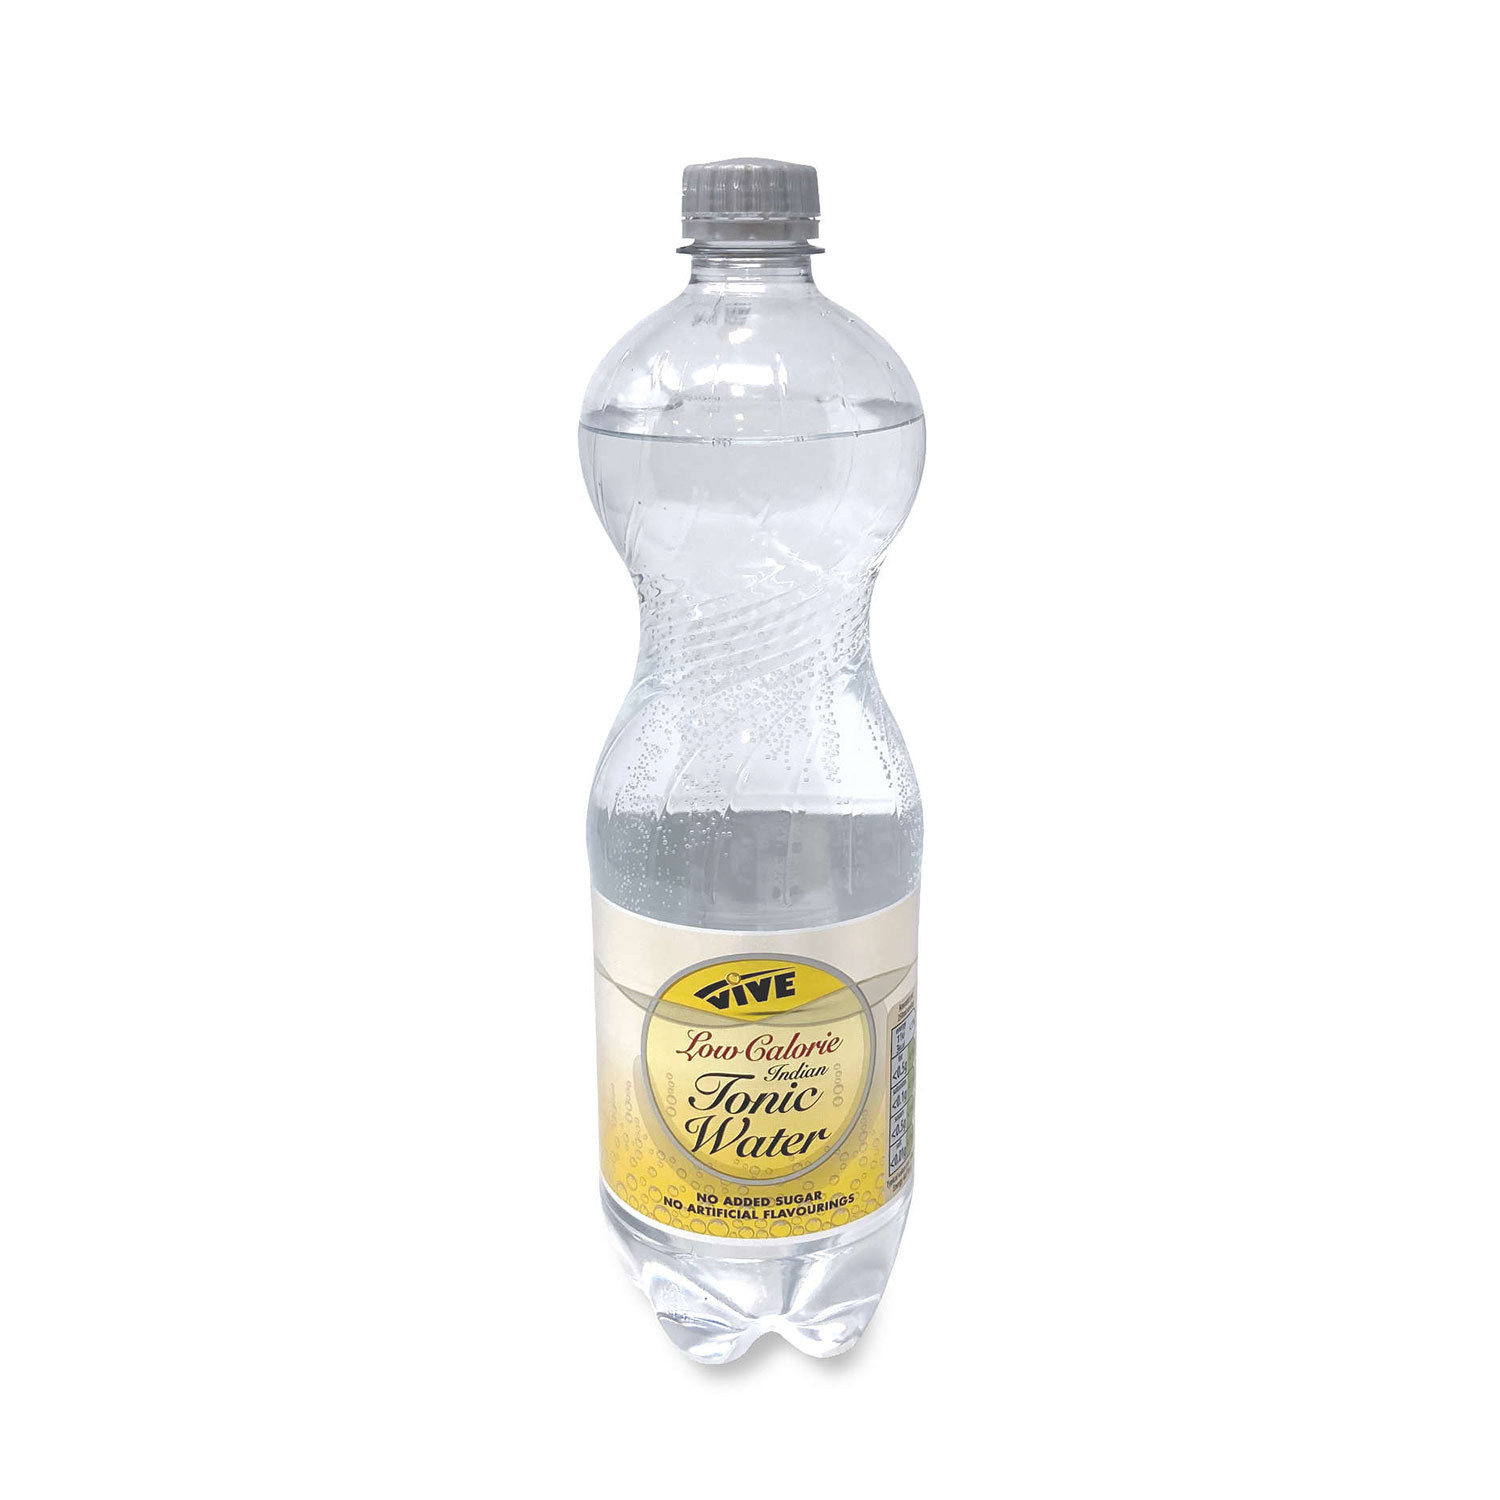 Low Calorie Indian Tonic Water